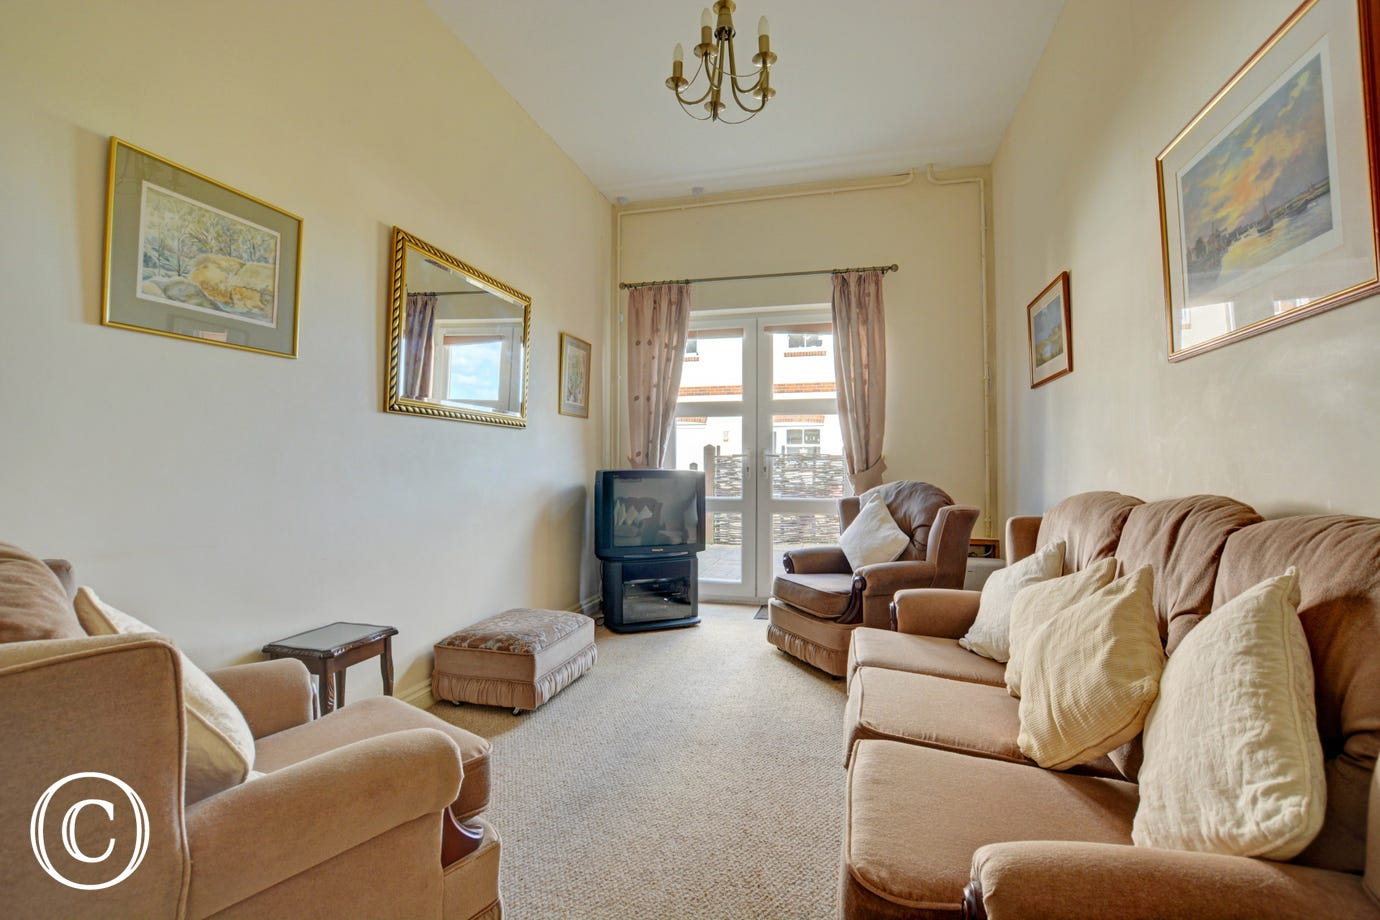 Garden sitting room on the ground floor is comfortably furnished with views over the garden